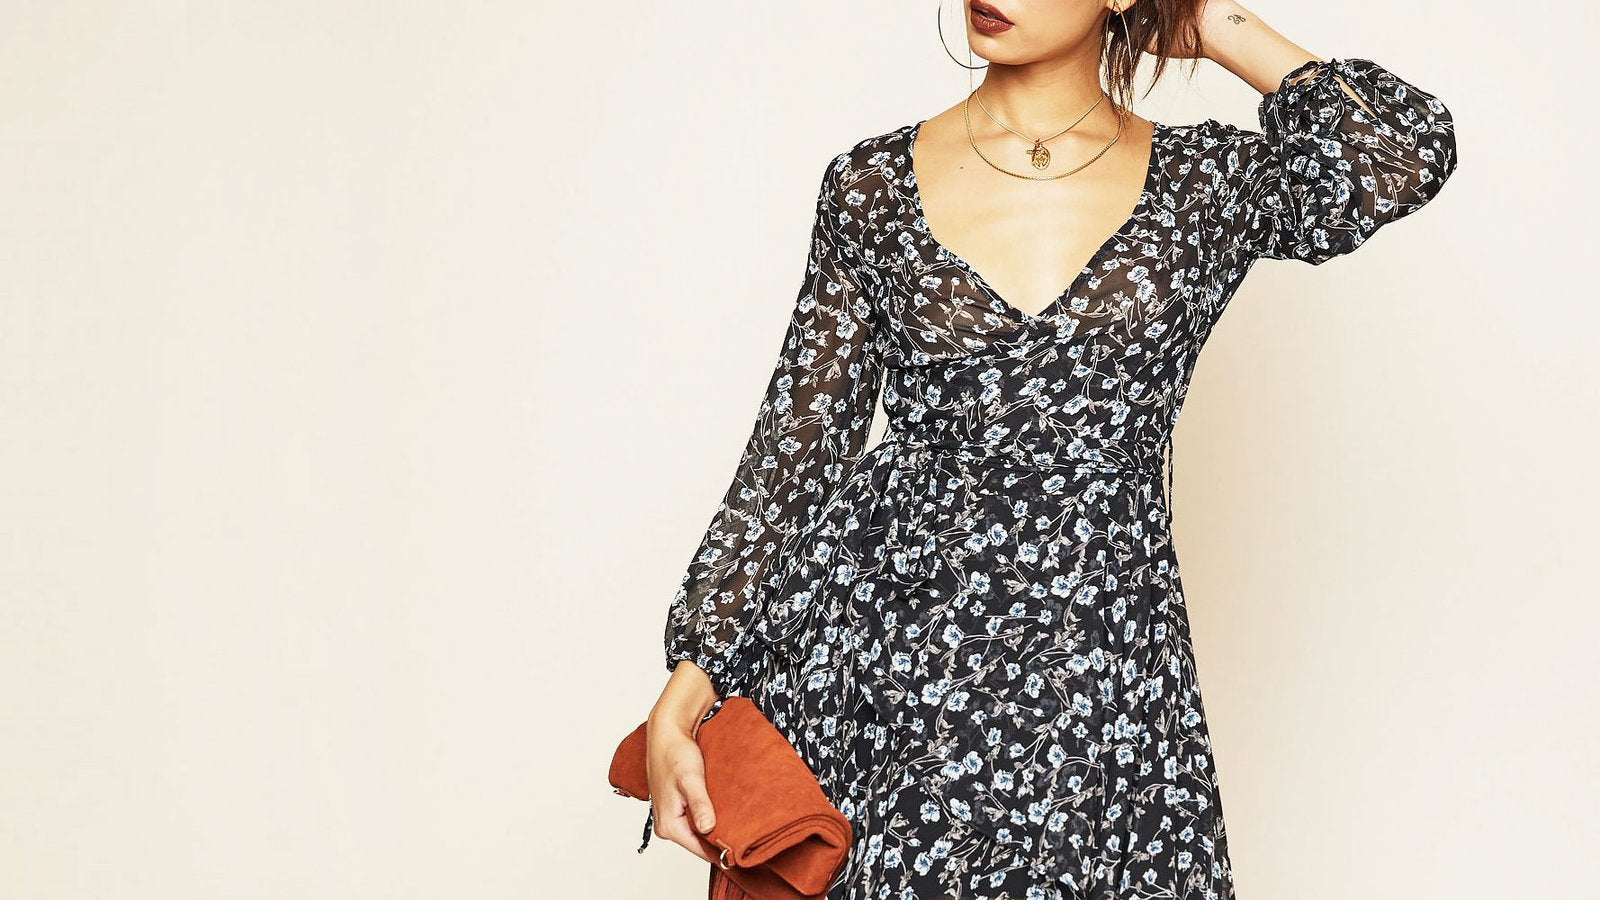 Memdalet - women's clothes shopping, dresses for going out, long sleeve maxi dresses, floral print wrap maxi dresses, ripped boyfriend jeans, sexy bodycon dresses, party dresses, cardigans for women, boho dresses, dresses for fall, modest dresses, little black dresses, jersey dresses, jeans for women, cute fall outfits, bohemian clothing for women, casual dresses, two piece outfits, printed rompers, long sleeve rompers, cute summer dresses, white lace dresses, black lace dresses, free shipping worldwide